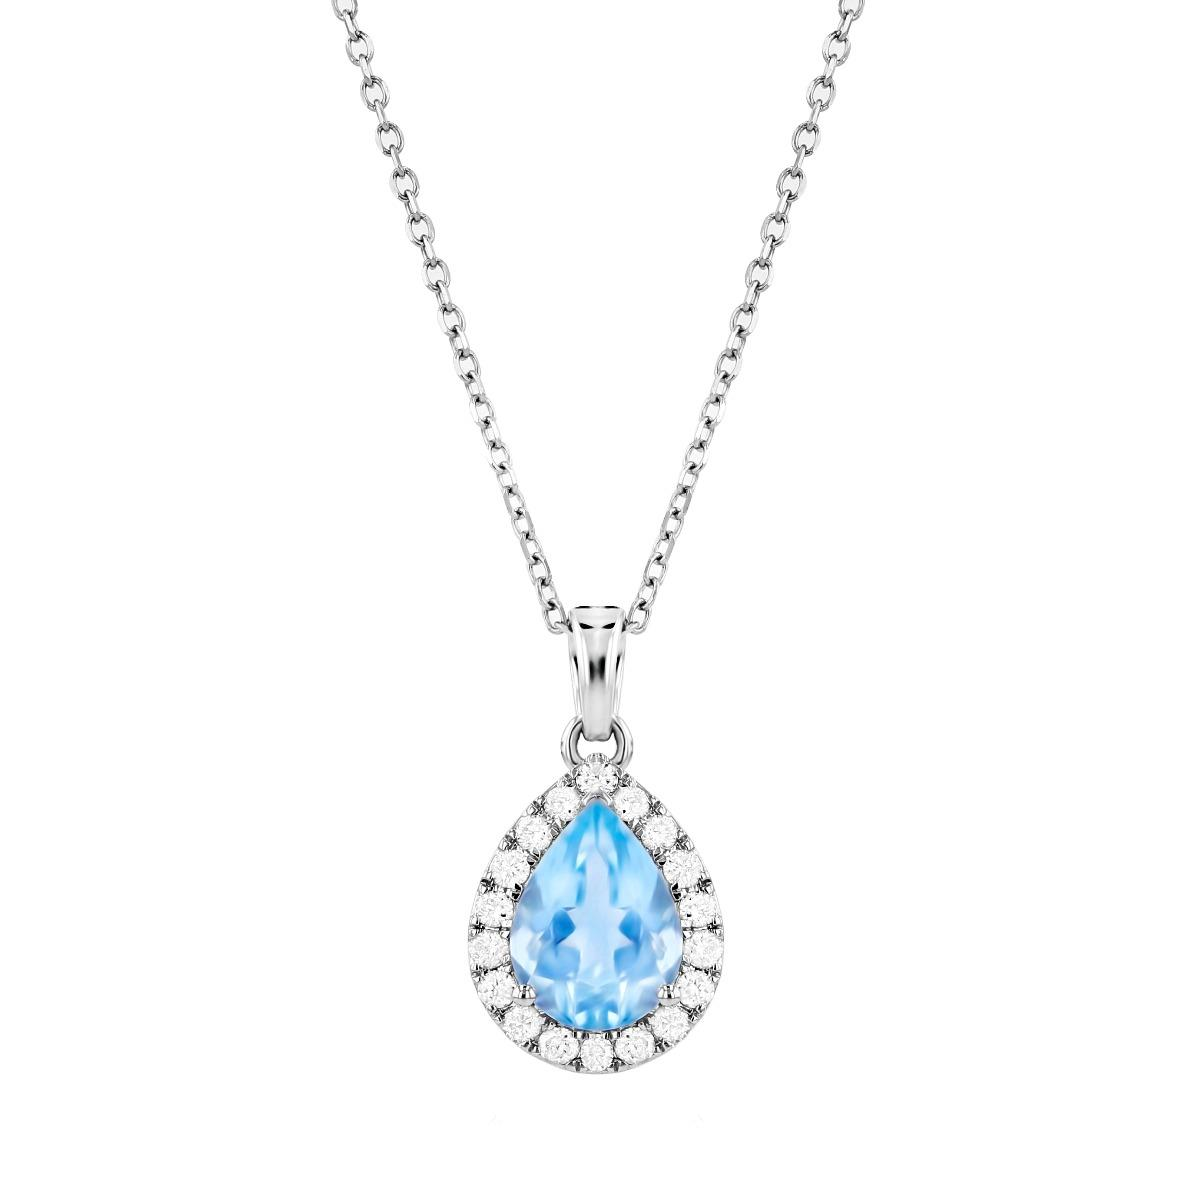 Rosa Mer Collection 0.89ct Pear Cut Aquamarine Halo Necklace